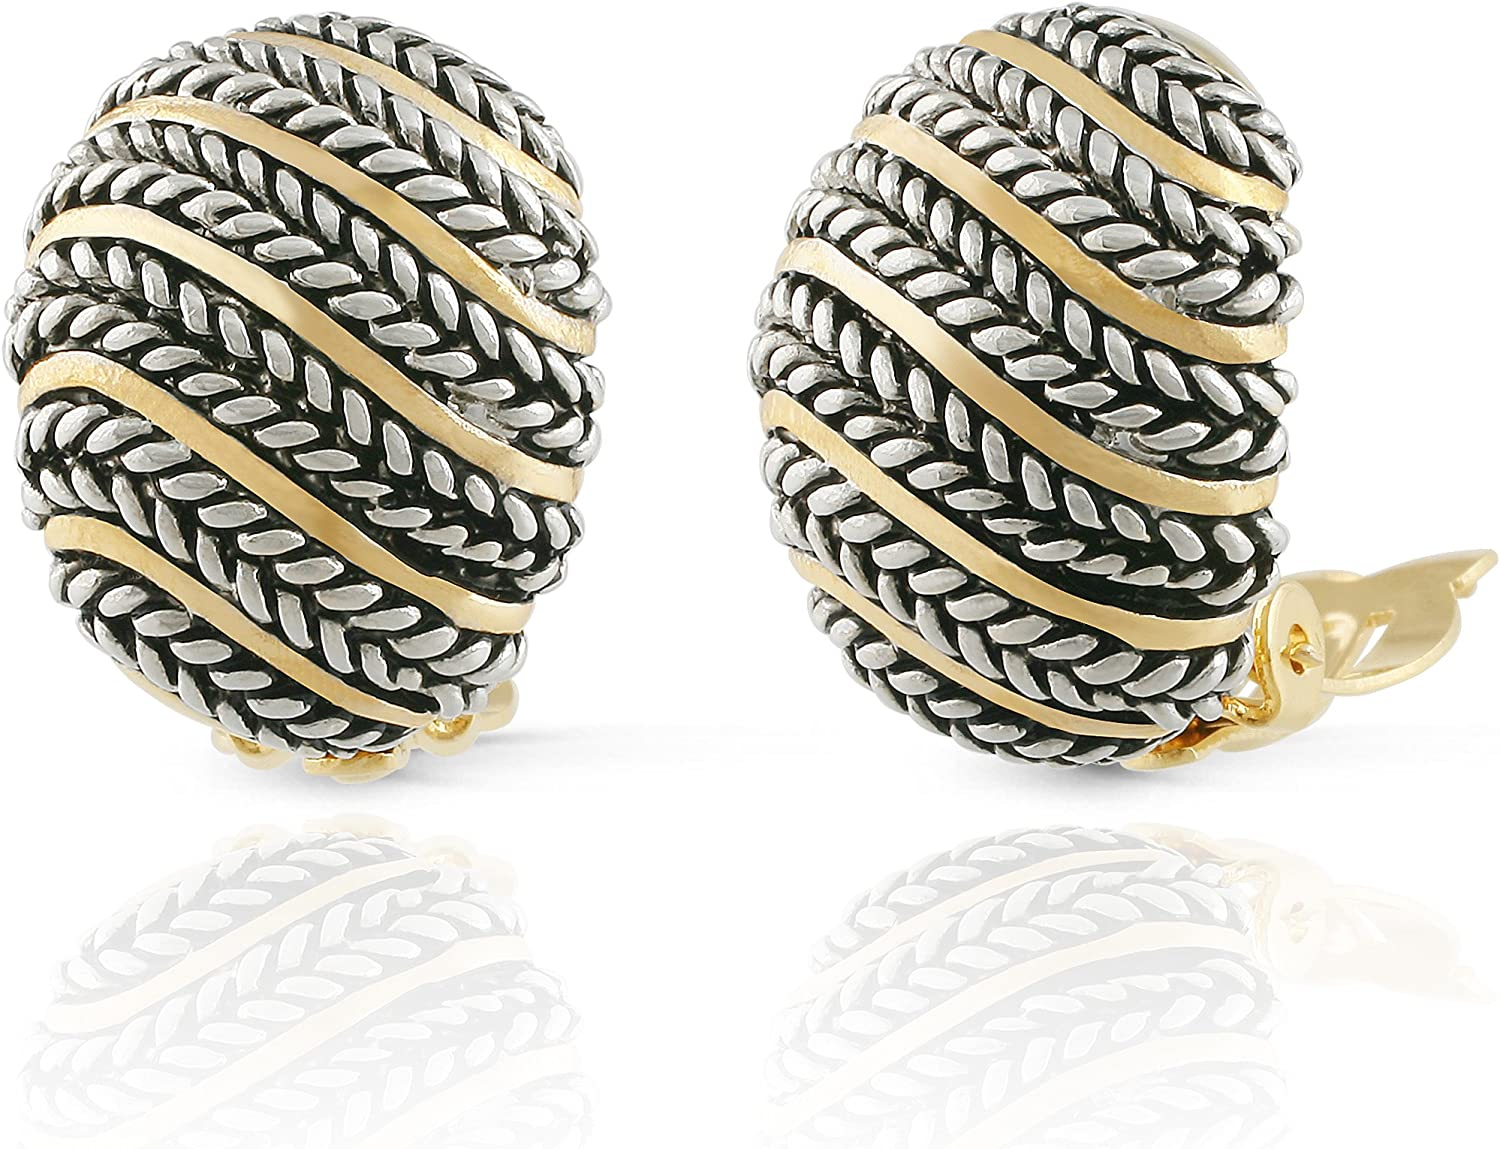 JanKuo Jewelry Two Tone Bali Antique Wave Style Shell Clip On Earrings